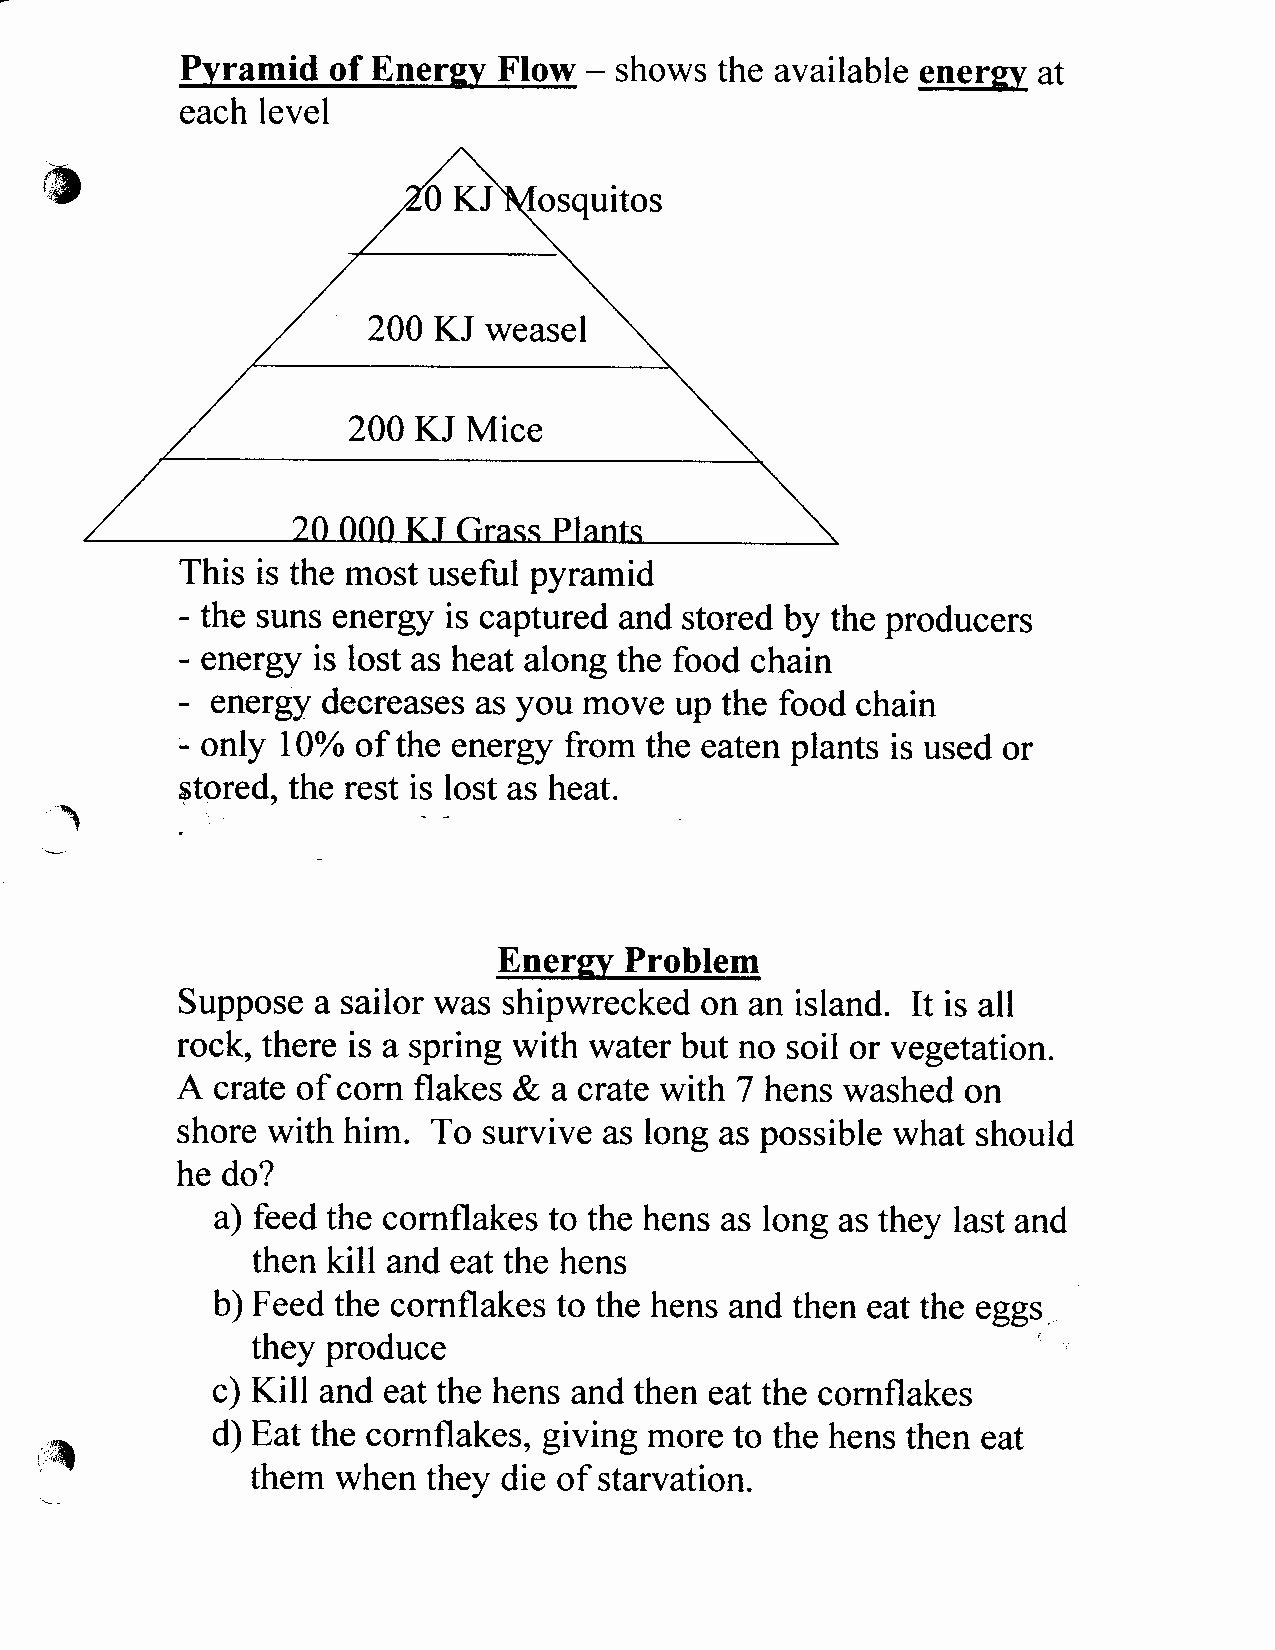 Bill Nye Biodiversity Worksheet Answers New Worksheet Bill Nye Biodiversity Worksheet Grass Fedjp